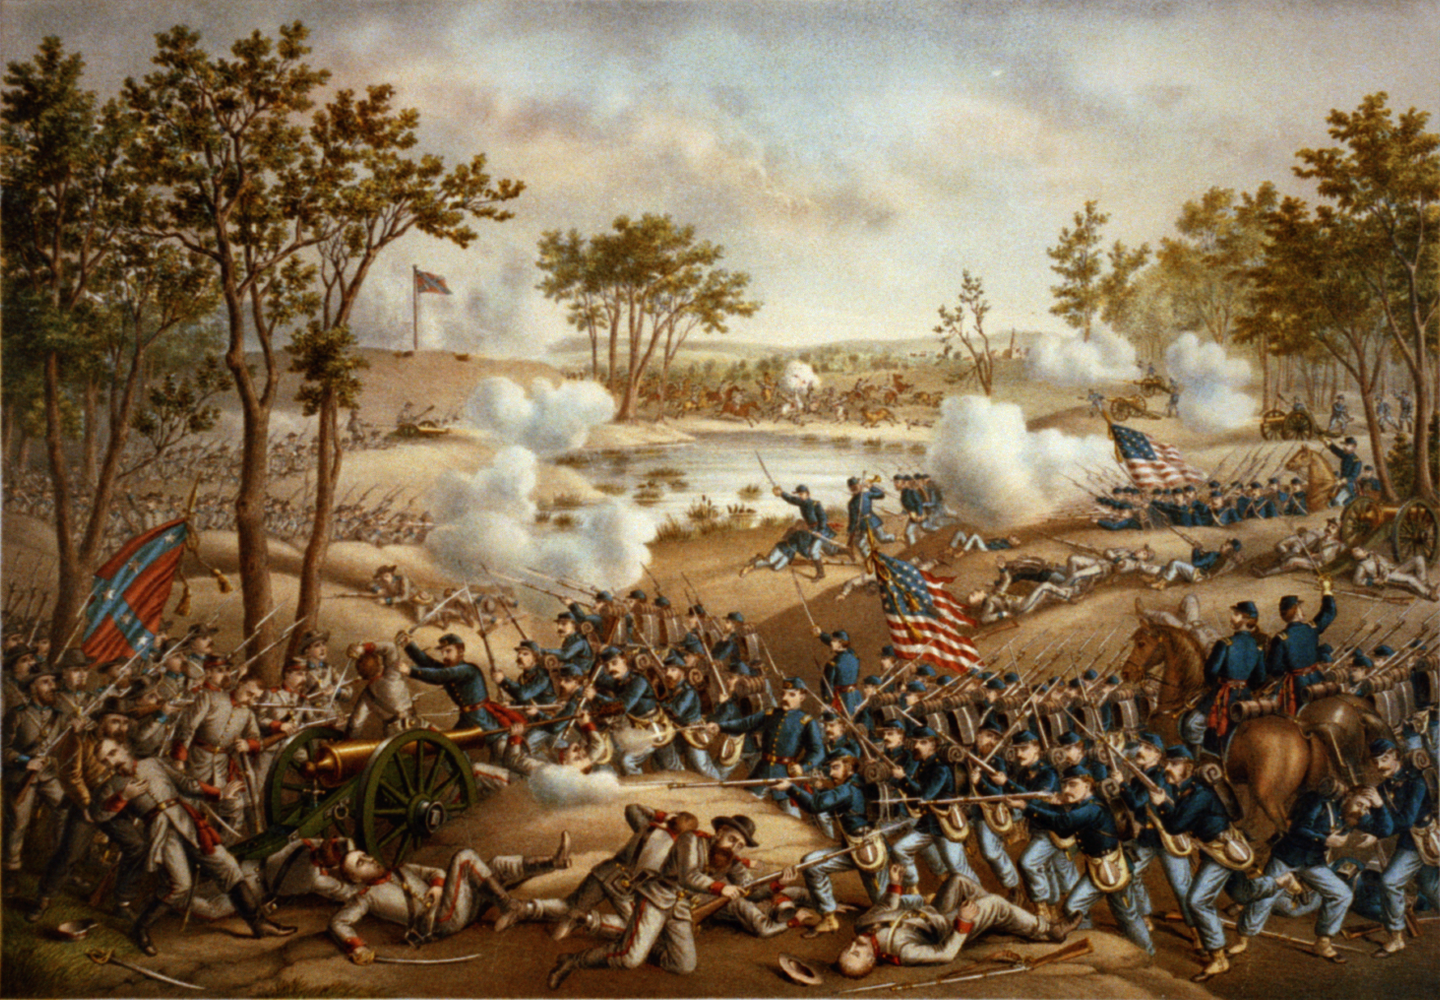 a history of the battle of manassas in the american civil war First and second manassas battles posted on american civil war battles answer 8 sometimes a person gets lost to history.